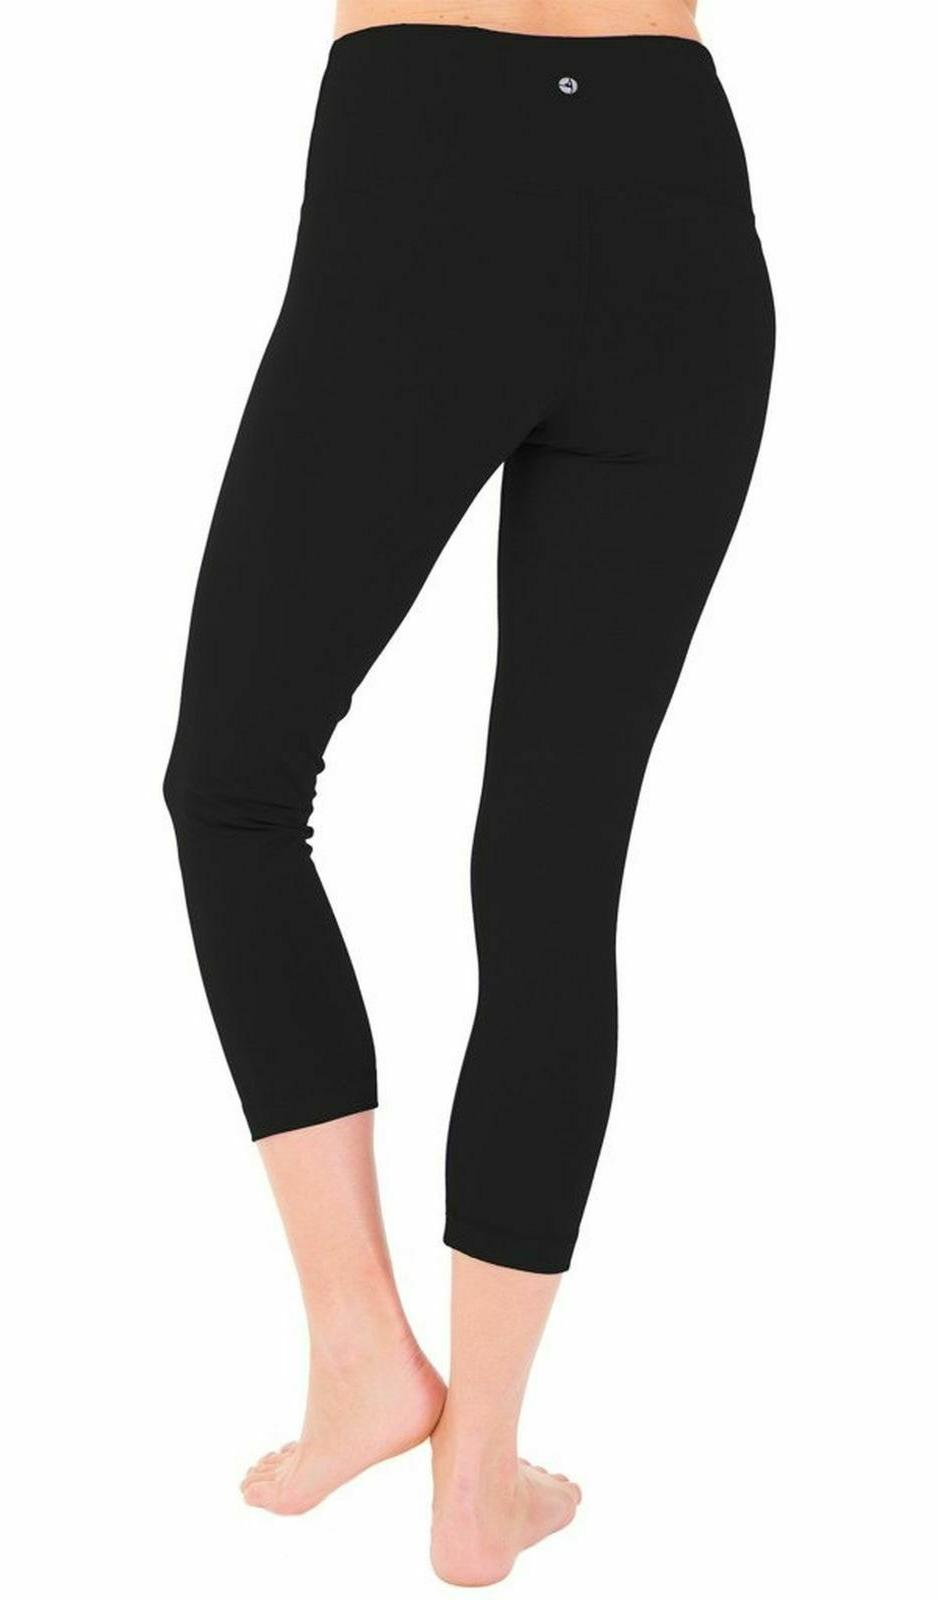 90 By Women's Pants Black